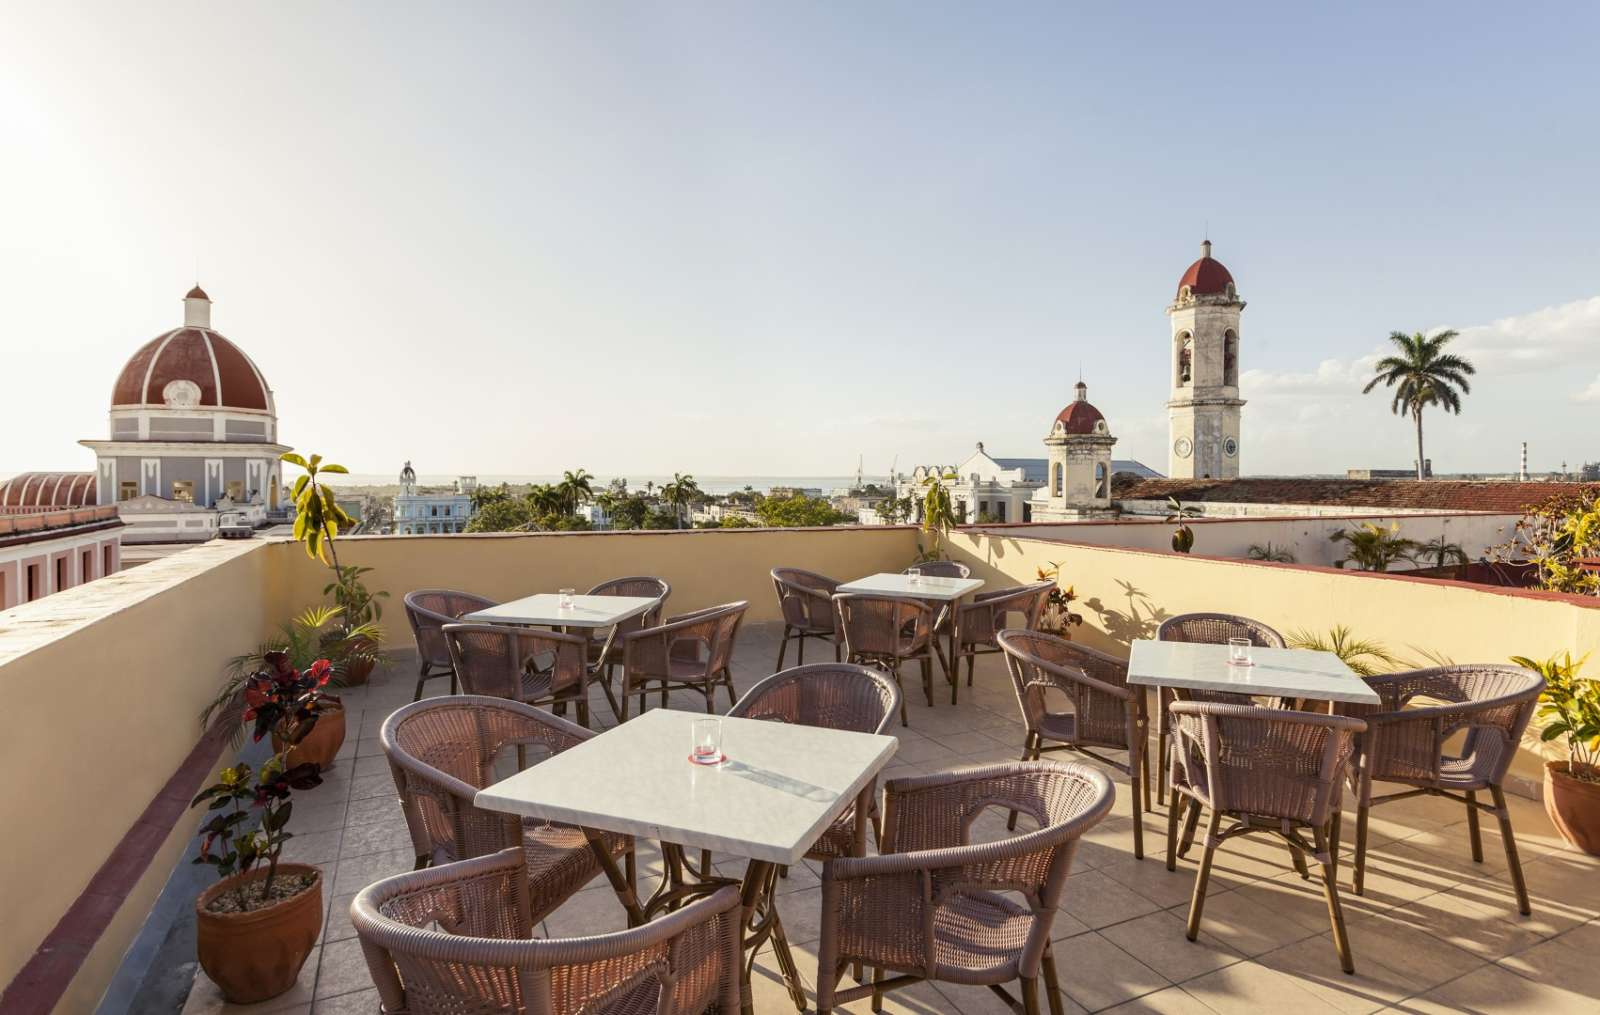 Rooftop terrace at Melia Union hotel in Cienfuegos